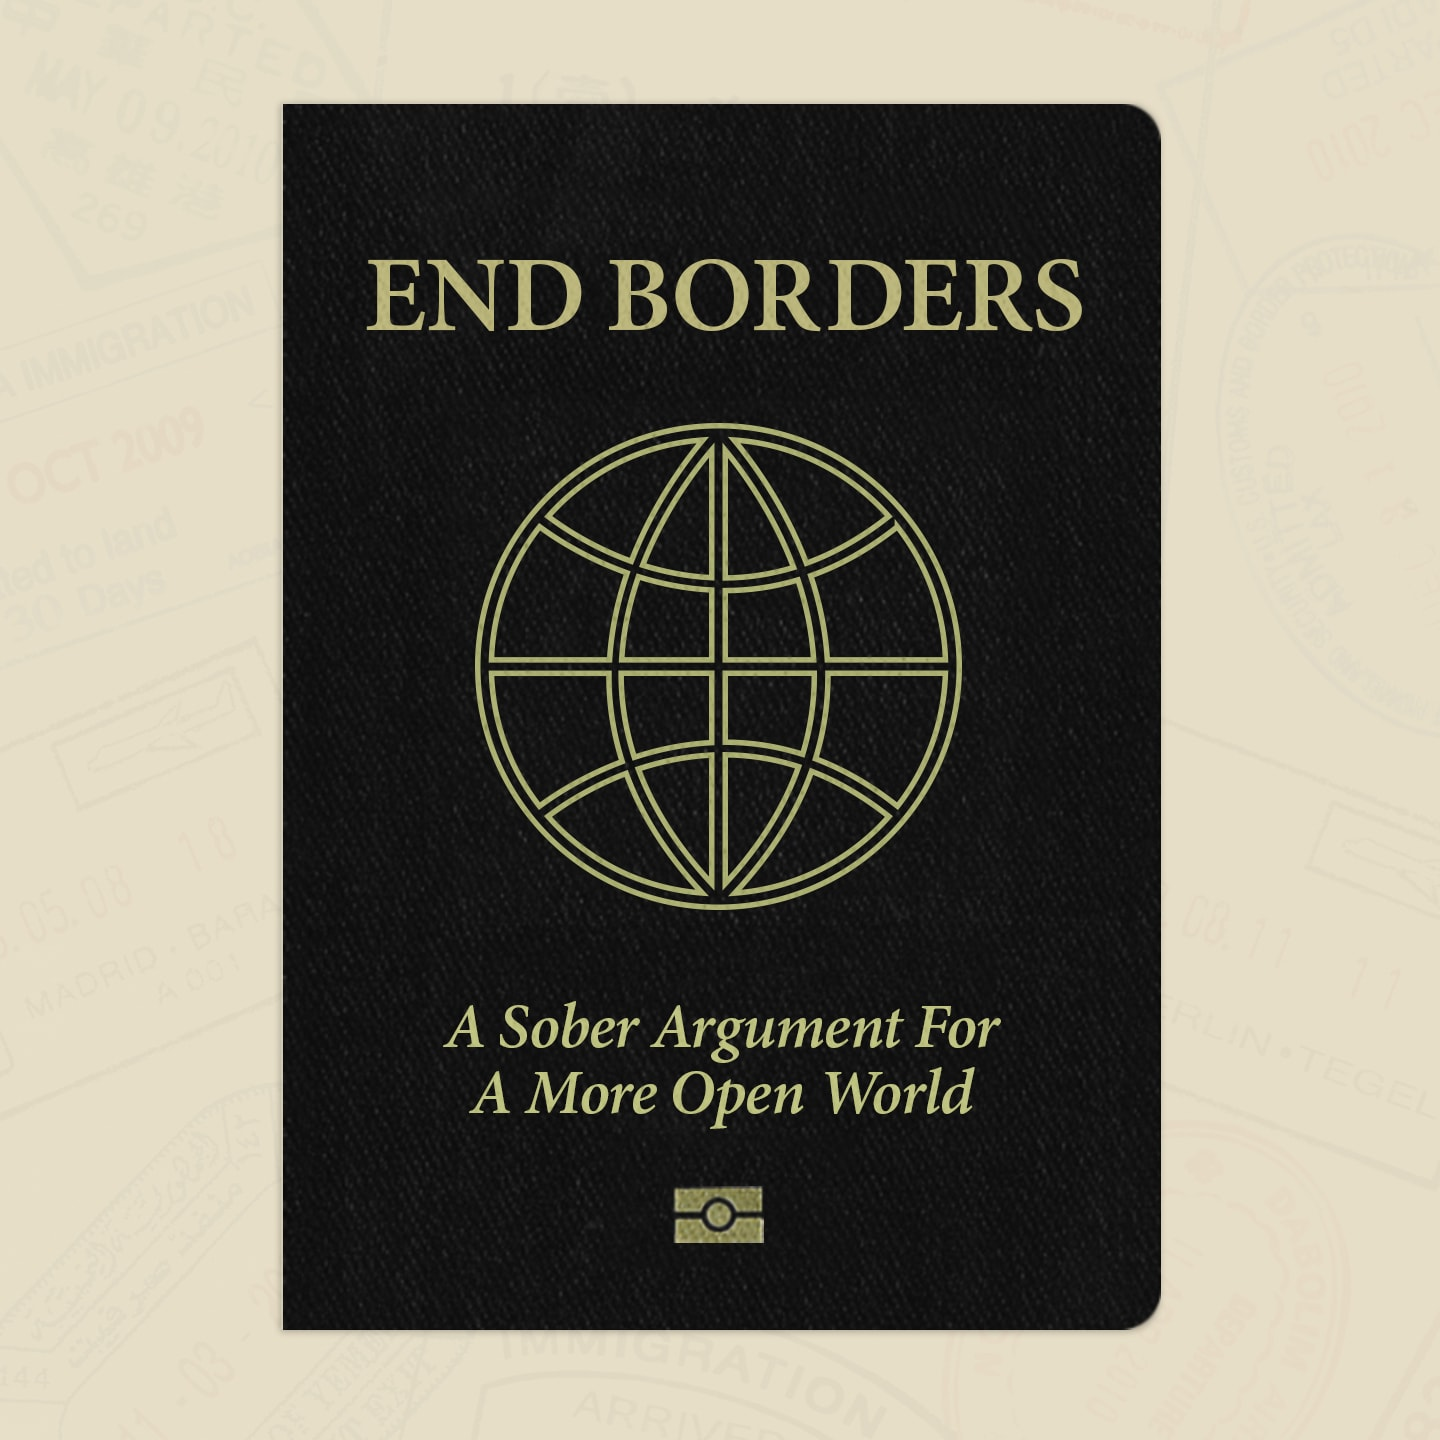 Renegade Academics Are Pushing To Open Up All The Borders In The Whole Damn World